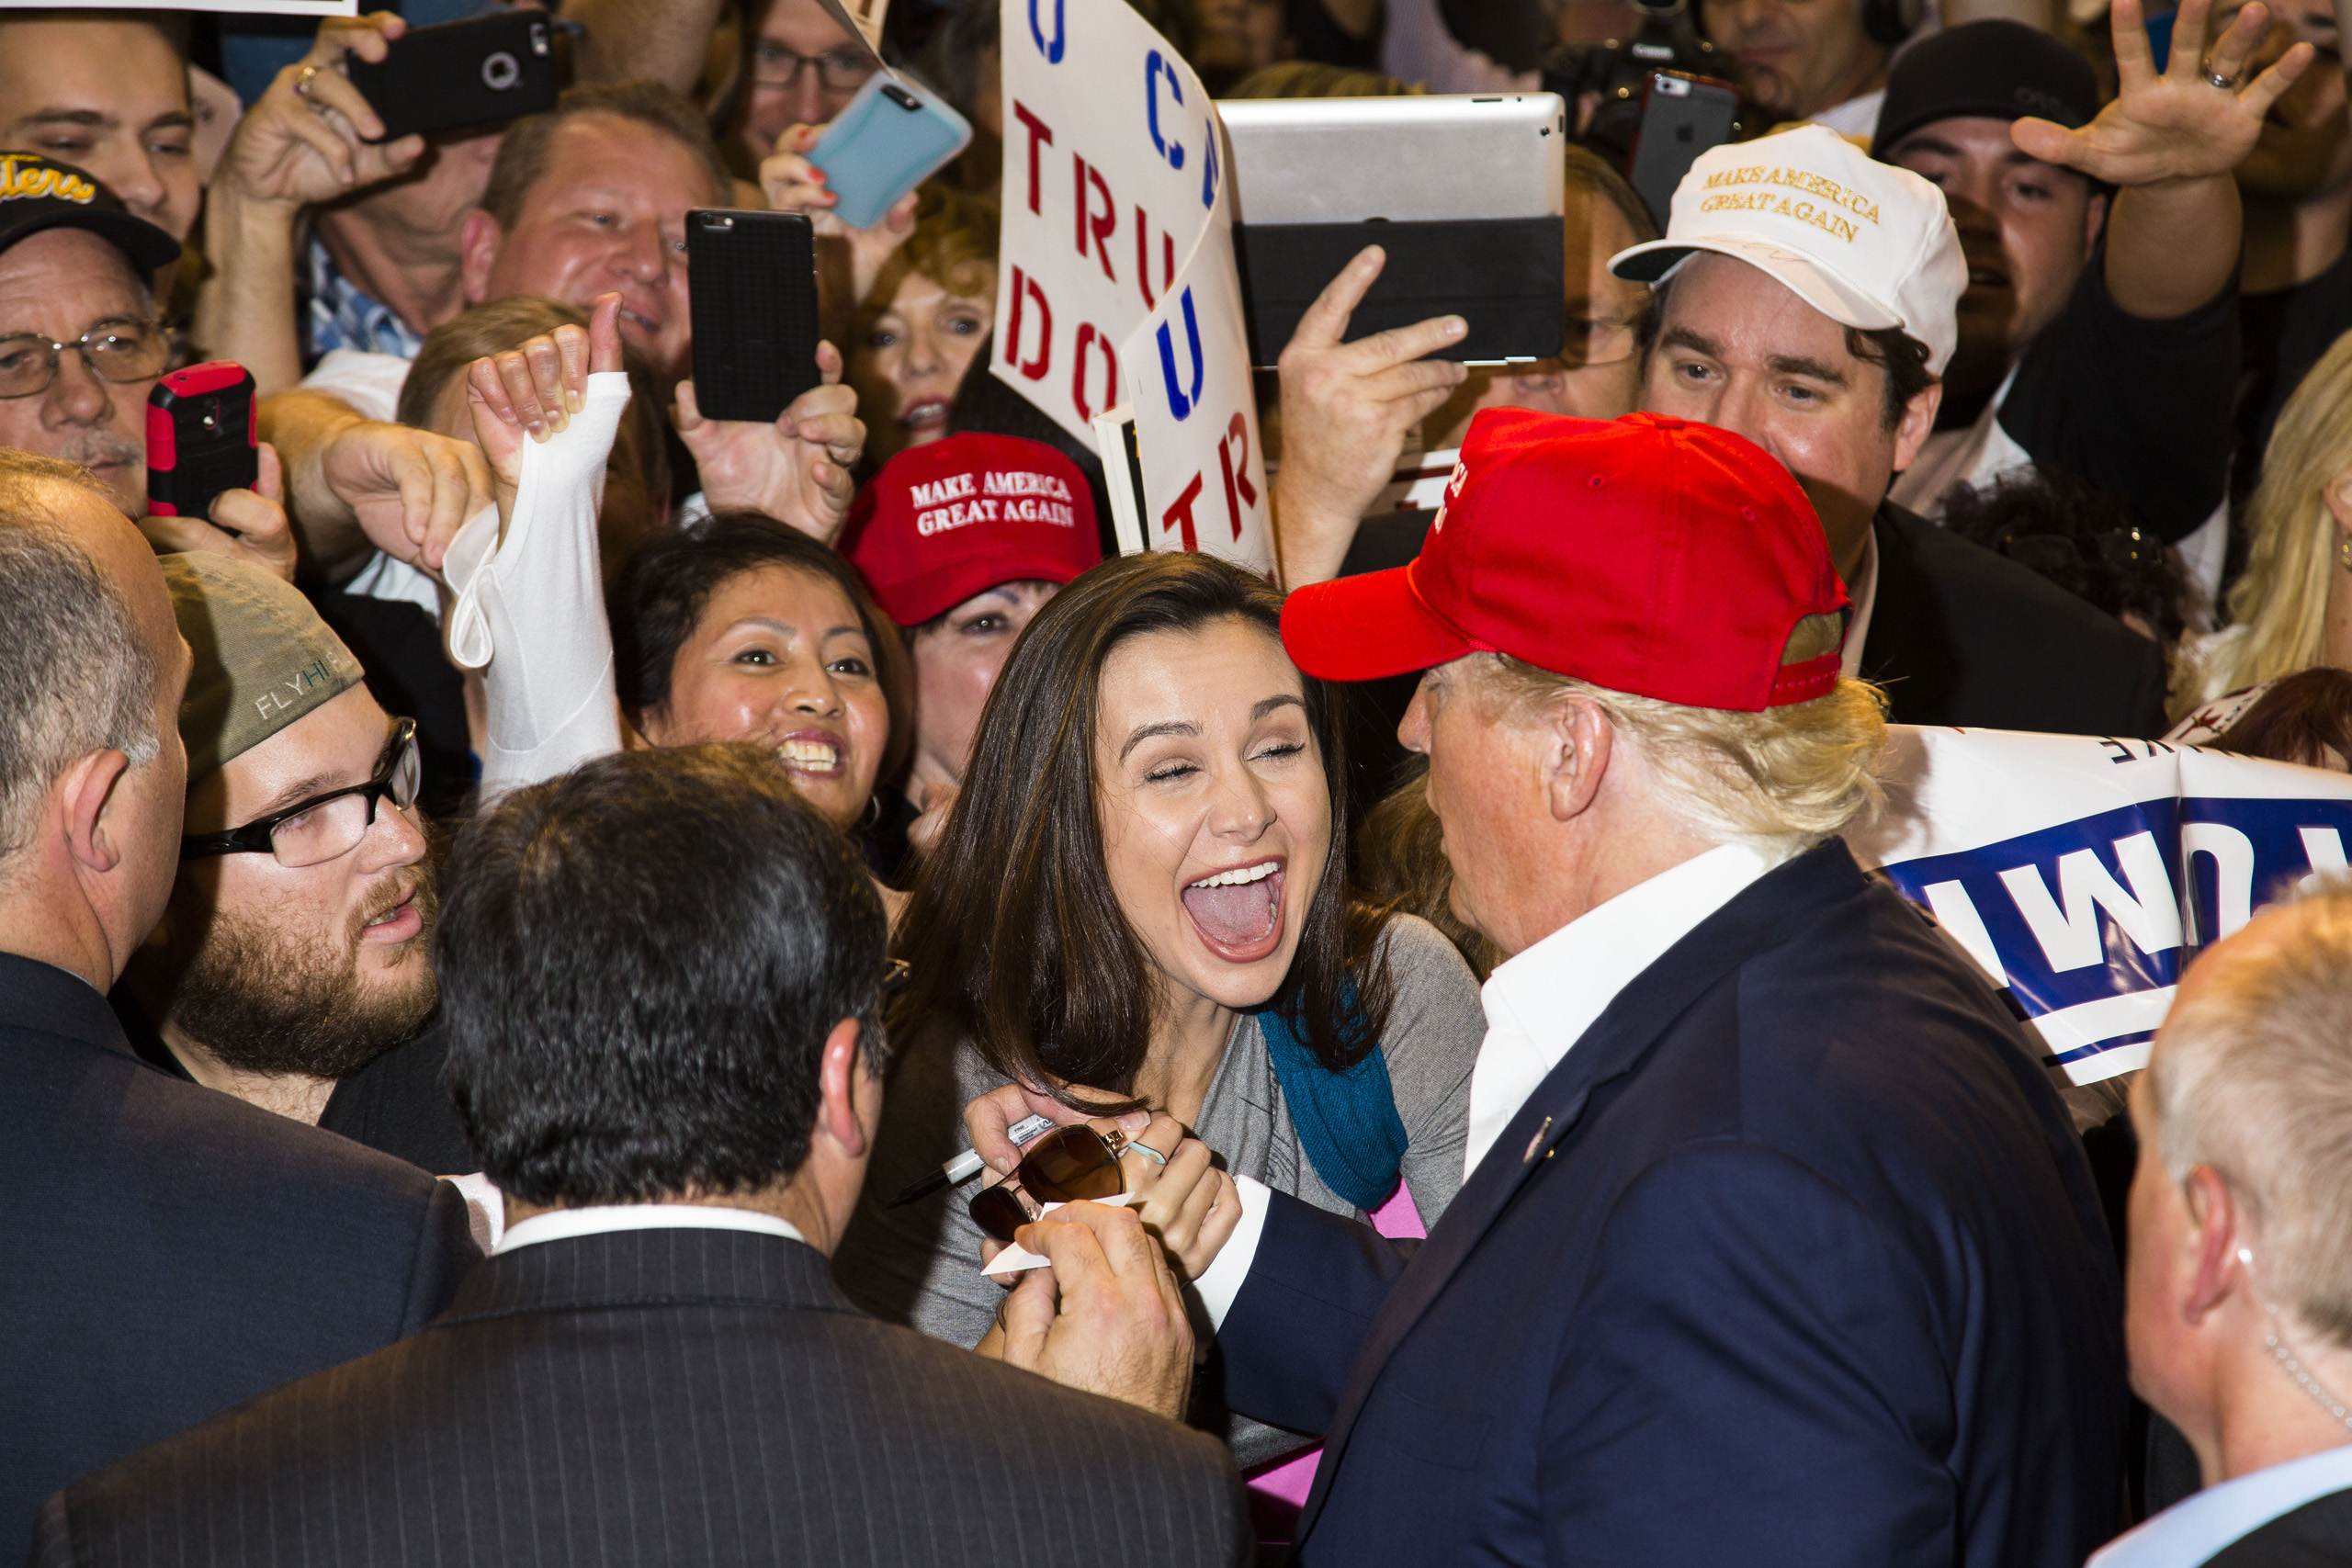 An audience member reacts to getting an autograph from Republican presidential candidate Donald Trump following his rally in Sarasota, Fla. Nov. 28, 2015.